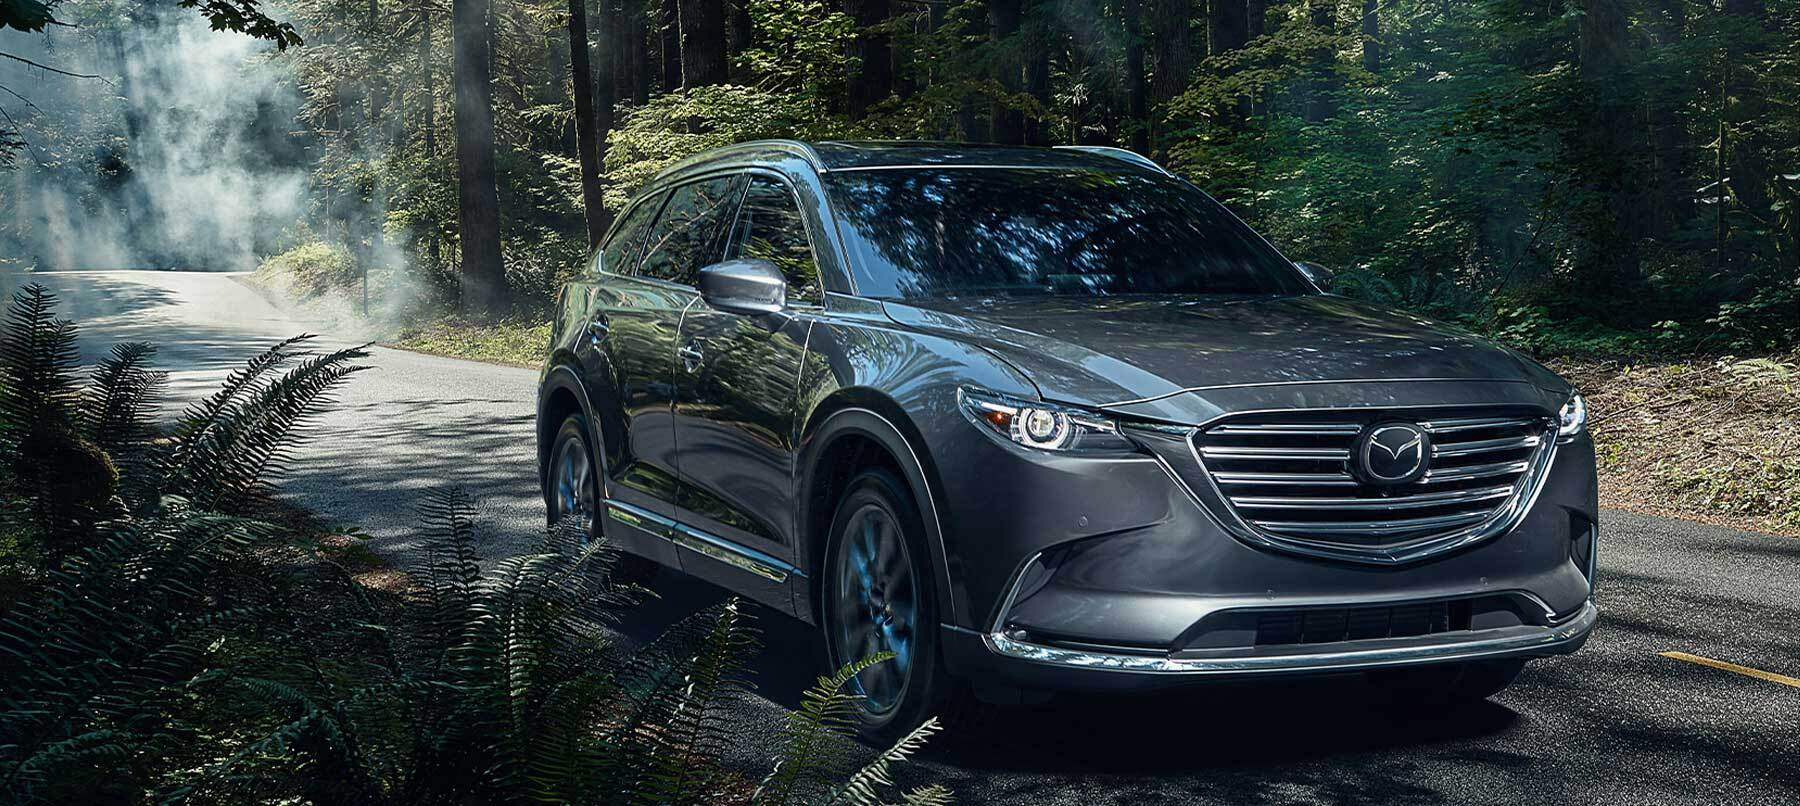 2020 Mazda CX-9 in Holland, MI